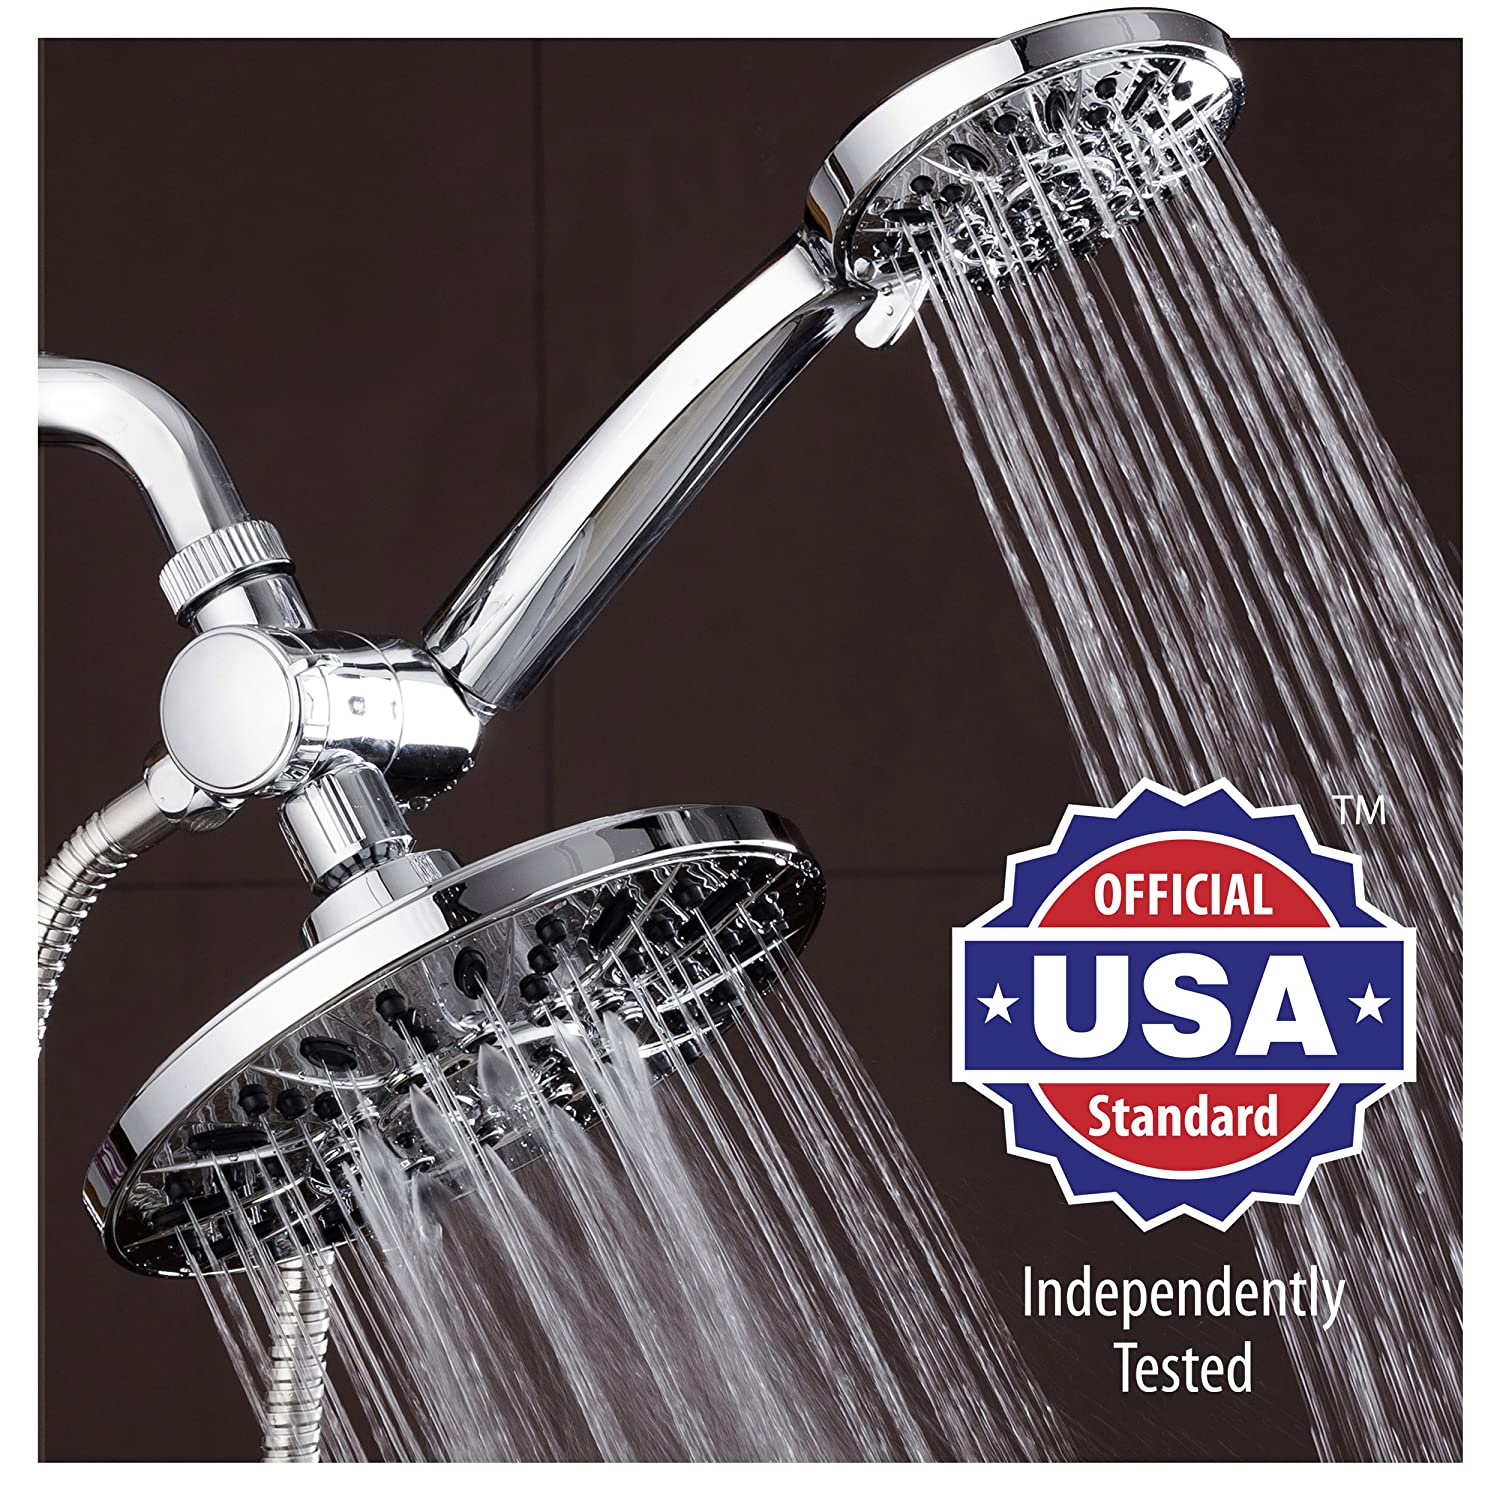 shower head and rain shower combo. AquaDance 7  Premium High Pressure 3 way Rainfall Shower Combo Combines the Best of Both Worlds Enjoy Luxurious 6 Setting Rain Showerhead and setting